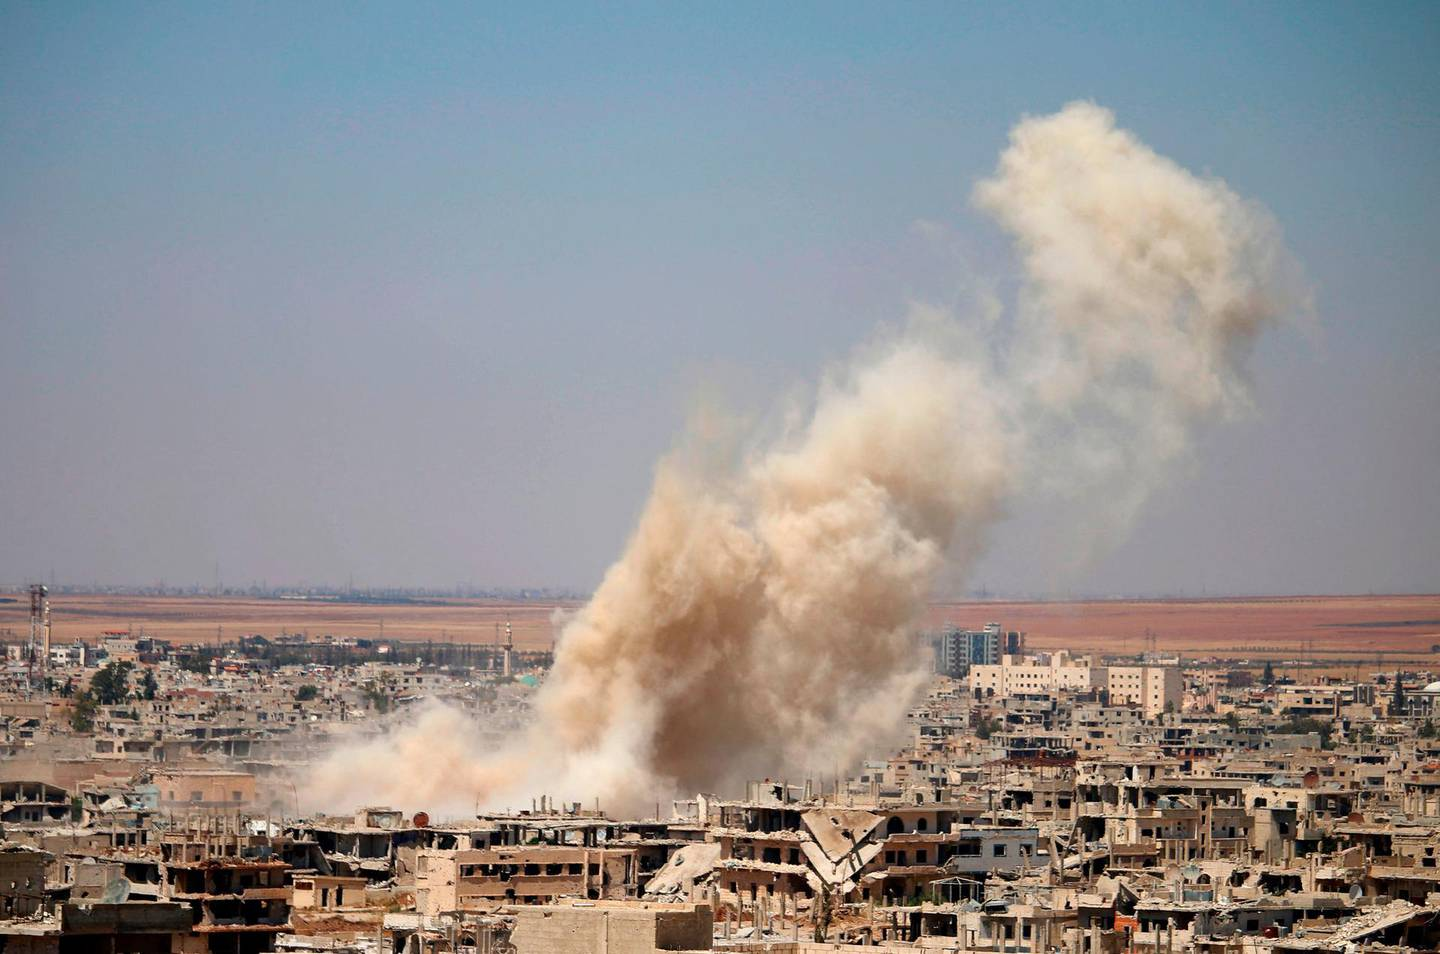 Smoke rises above opposition held areas of Daraa during an airstrike by Syrian regime forces, on June 25, 2018. Russian-backed regime forces have for weeks been preparing an offensive to retake Syria's south, a strategic zone that borders both Jordan and the Israeli-occupied Golan Heights. / AFP / Mohamad ABAZEED